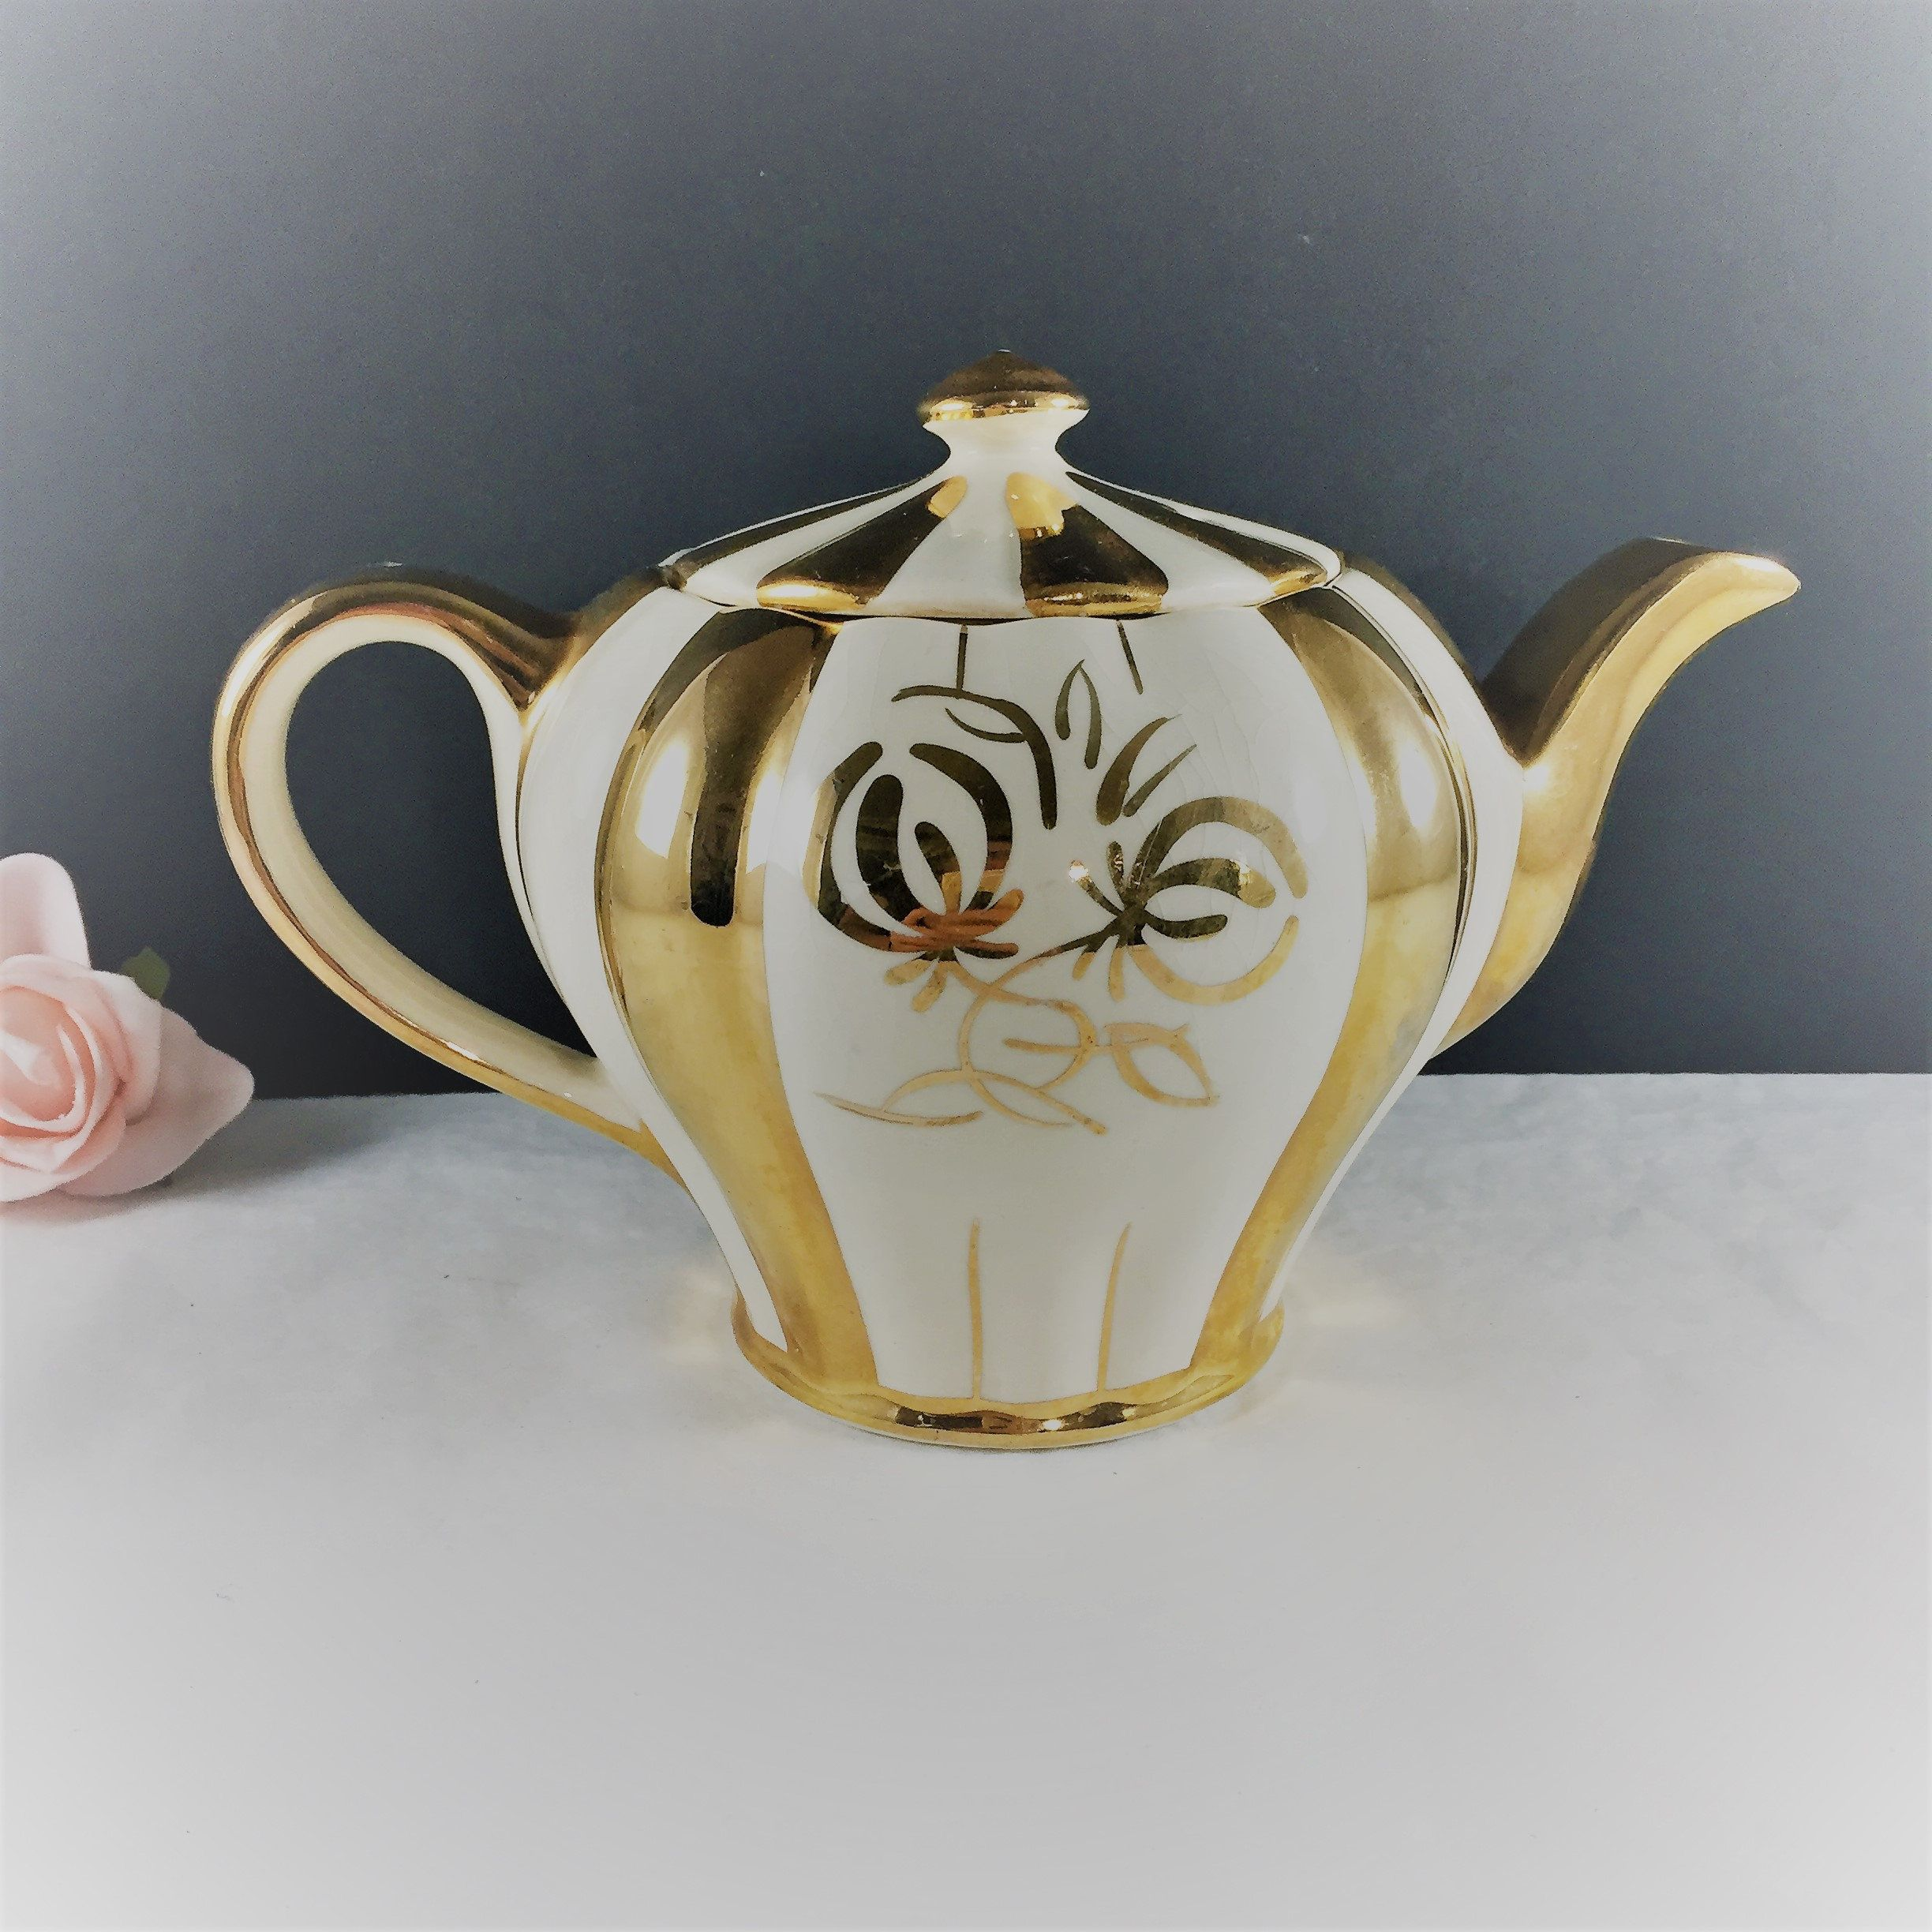 Vintage Teapot Gold And White Collectible Teapot Full Size Sudlow Teapot Vintage Teapot Made In England Burslem Teapot Gift For Her Tea Love Tea Pots Vintage Tea Pots Porcelain Tea Set